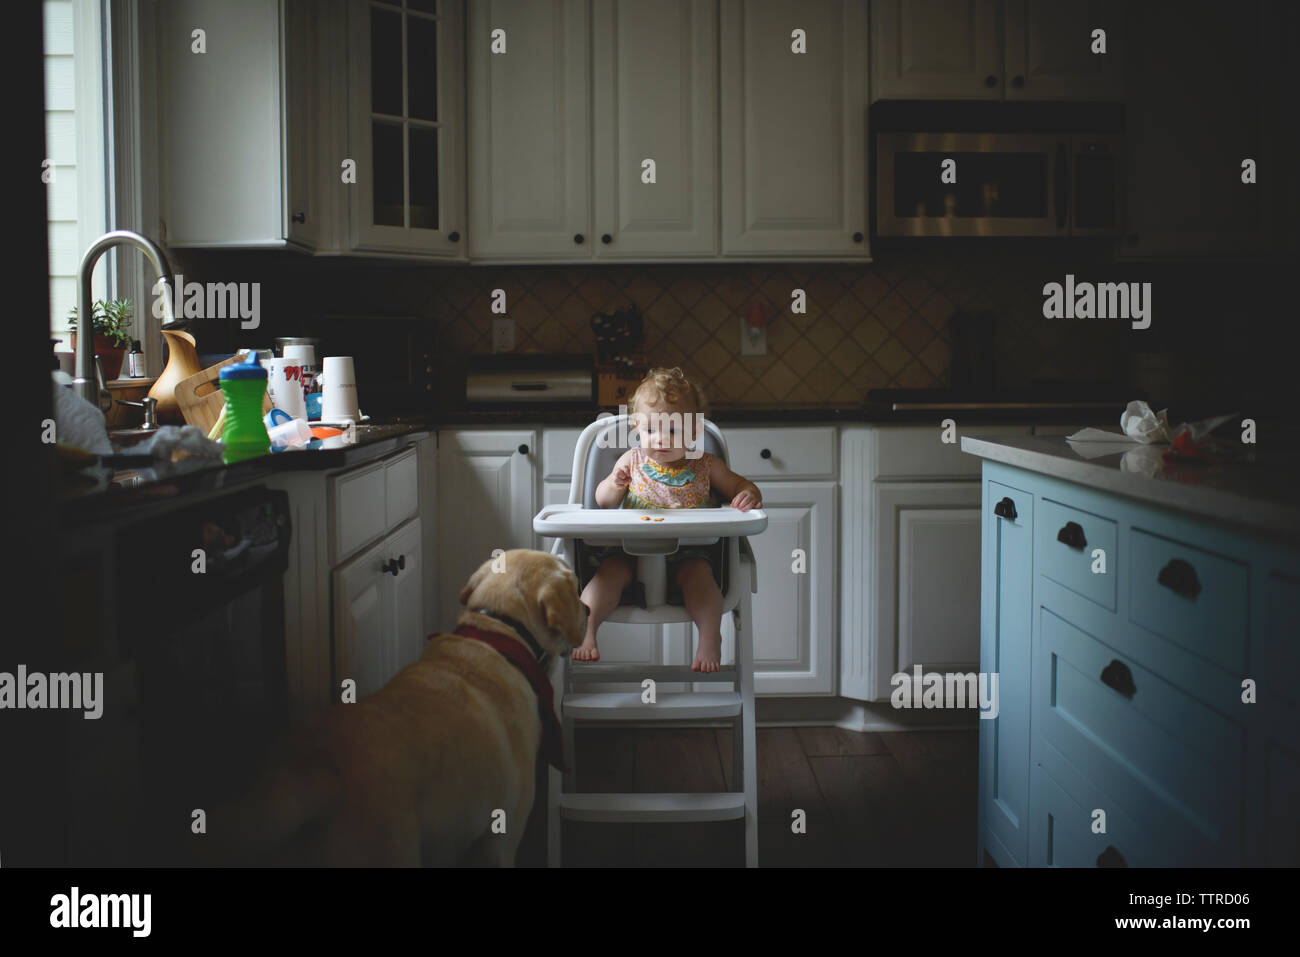 Baby Girl Looking At Dog While Sitting On High Chair In Kitchen